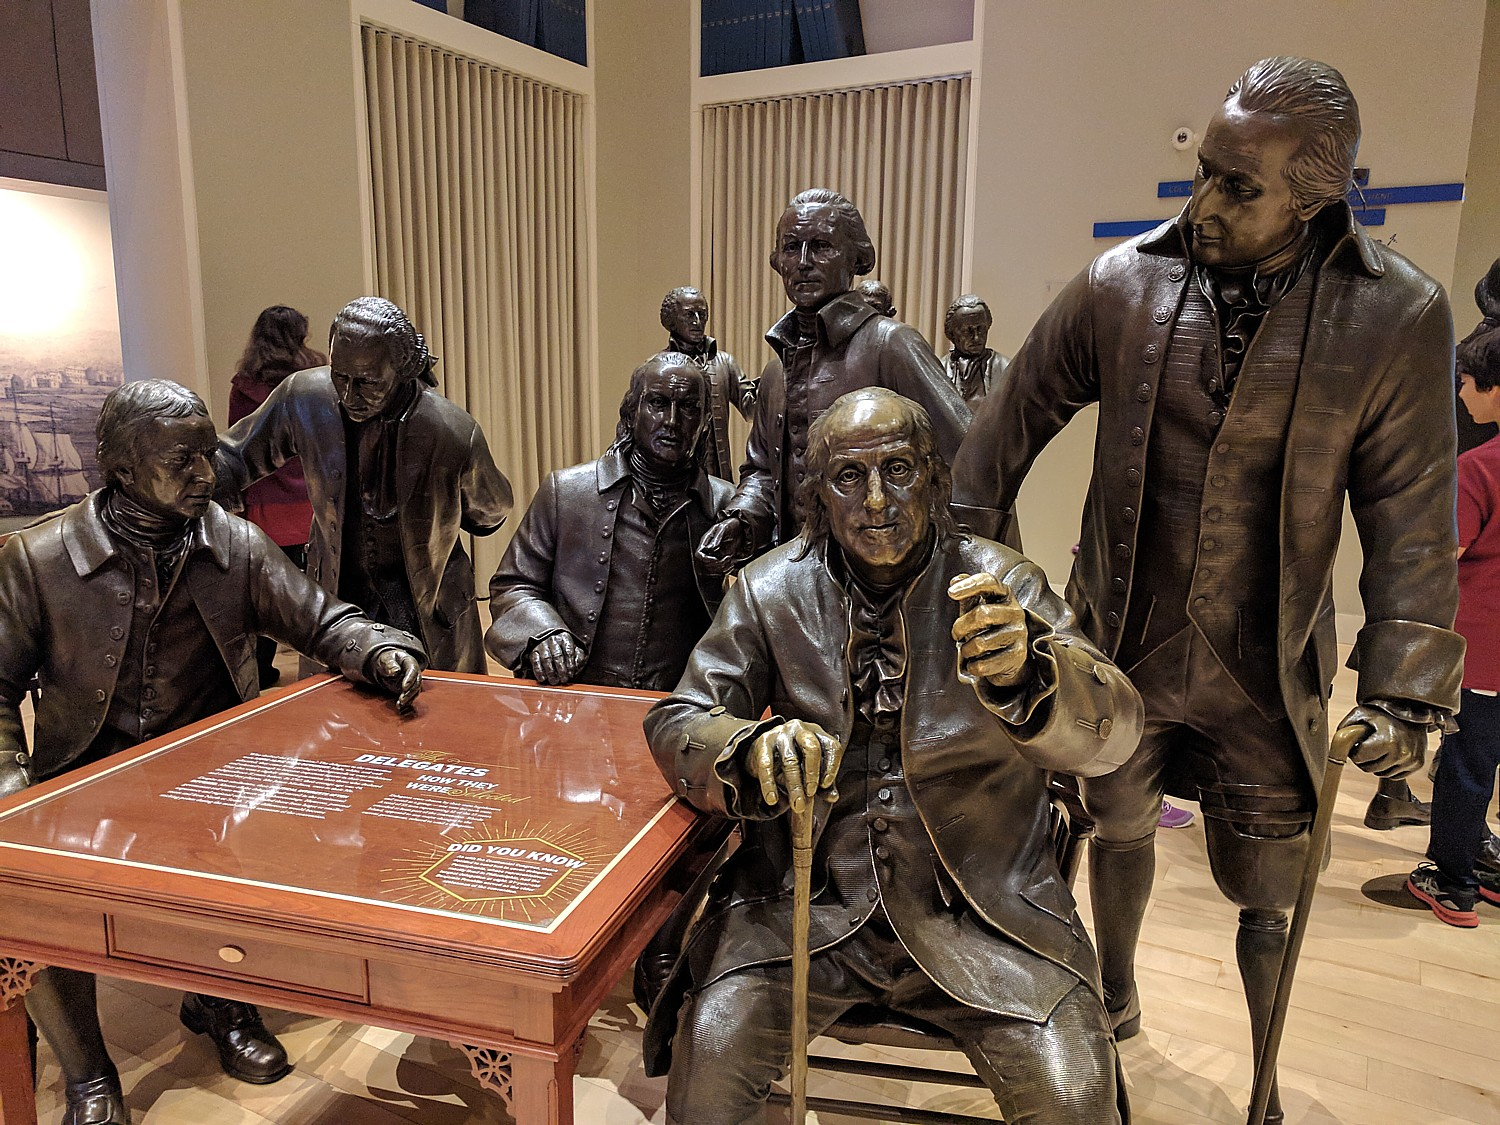 72 Hours in Philadelphia: A Visit to the National Constitution Center Exposes Contradictions in 'We the People'